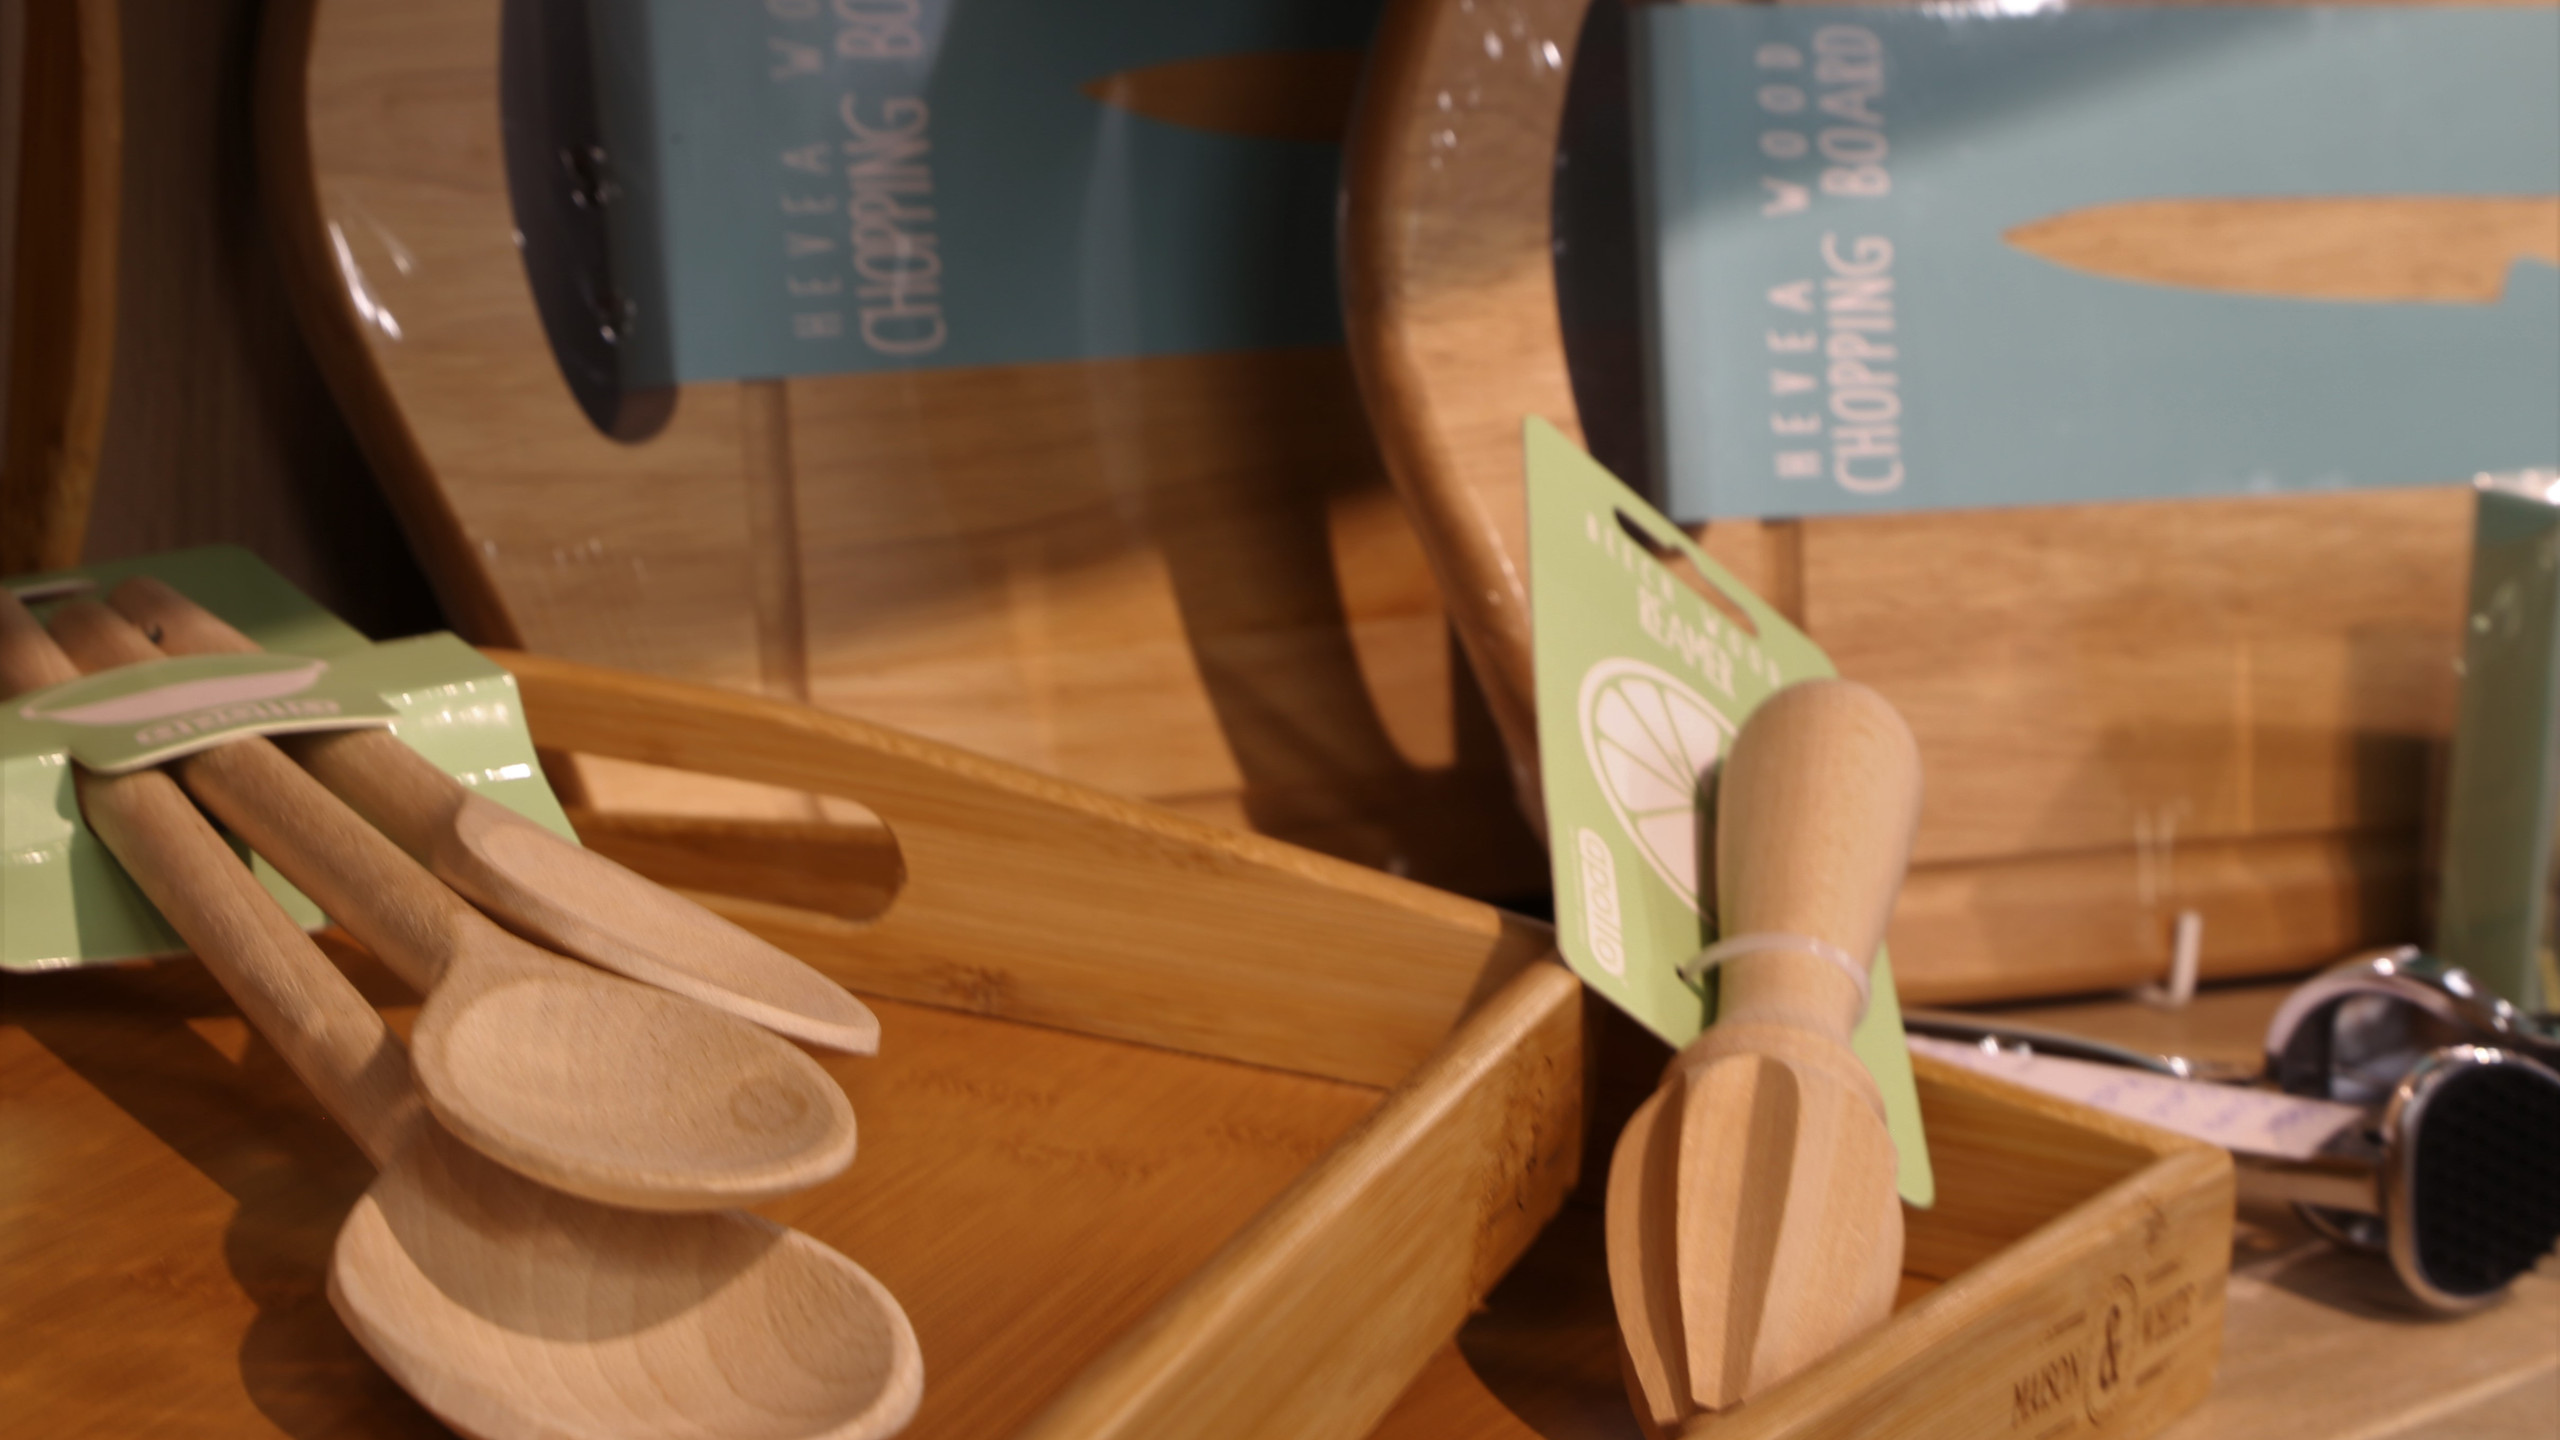 Boards, trays and utensils